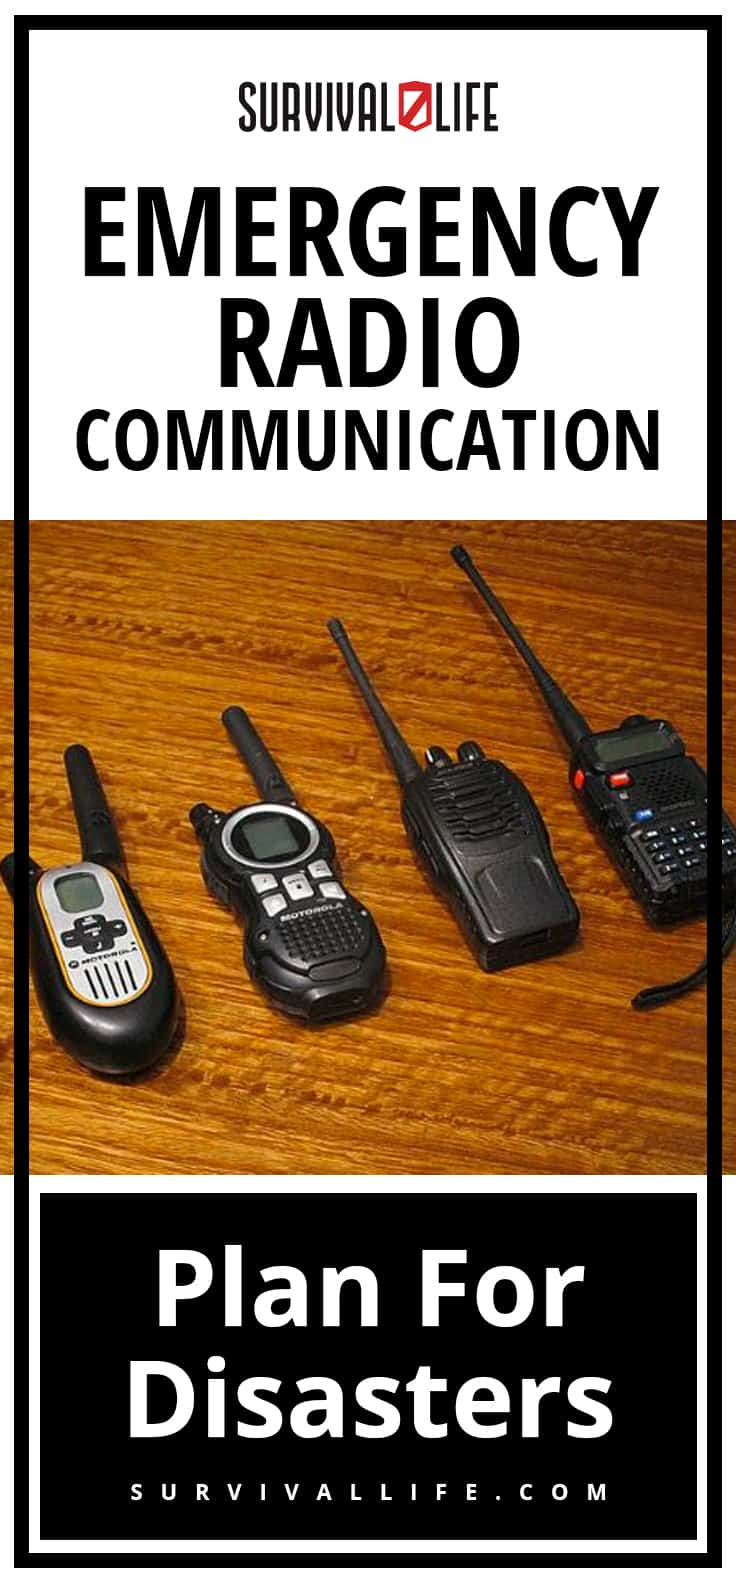 Emergency Radio Communication Plan For Disasters